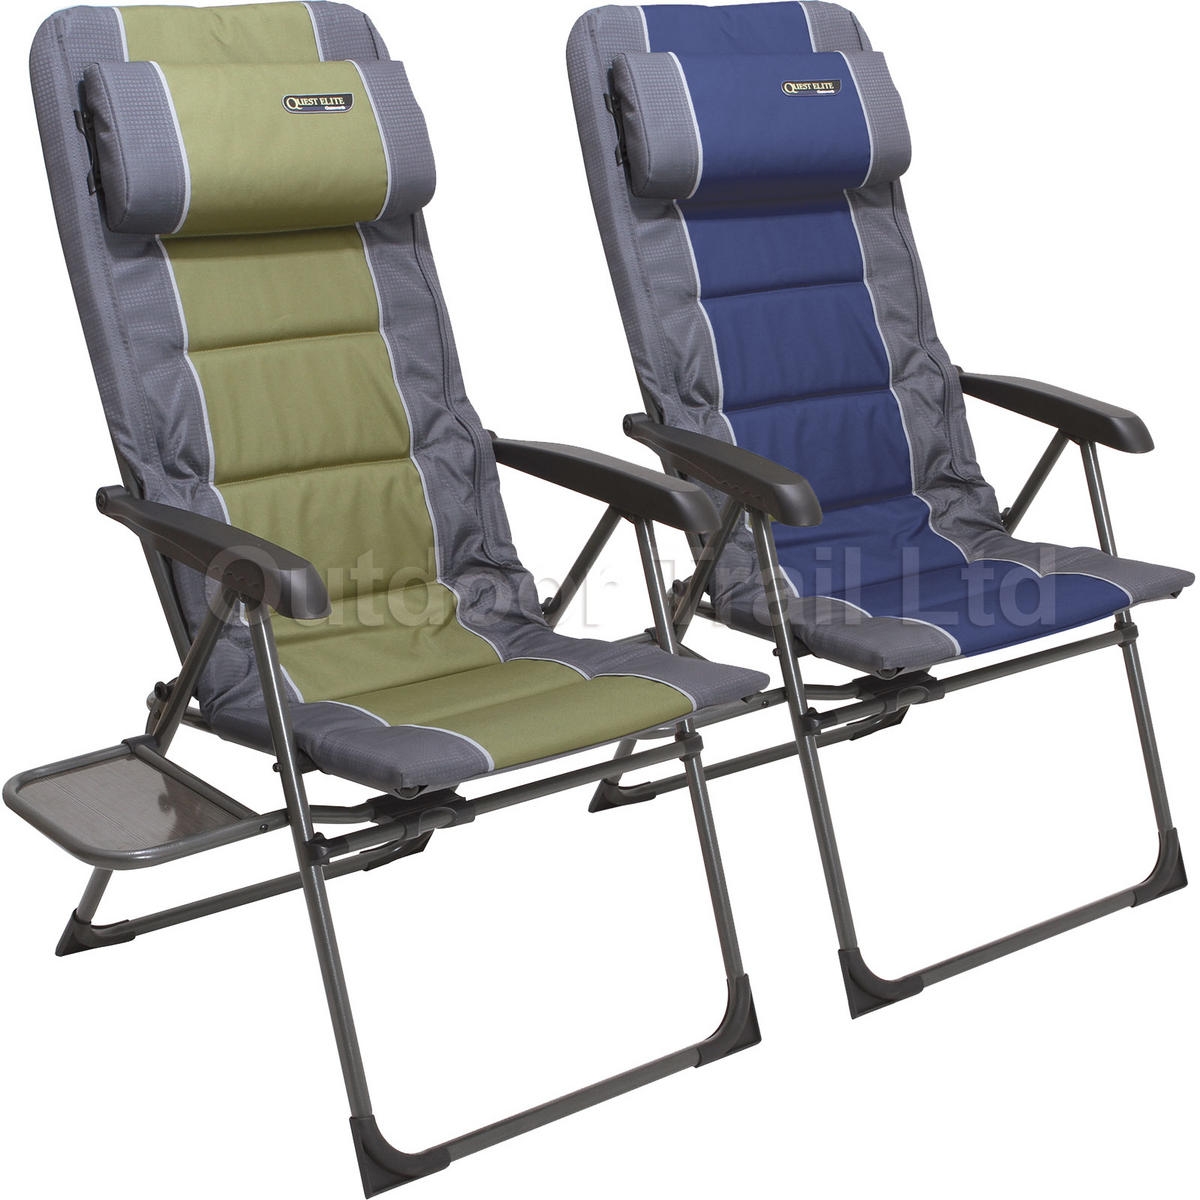 Quest Elite Ragley SL Folding Portable Camping Seat Chair